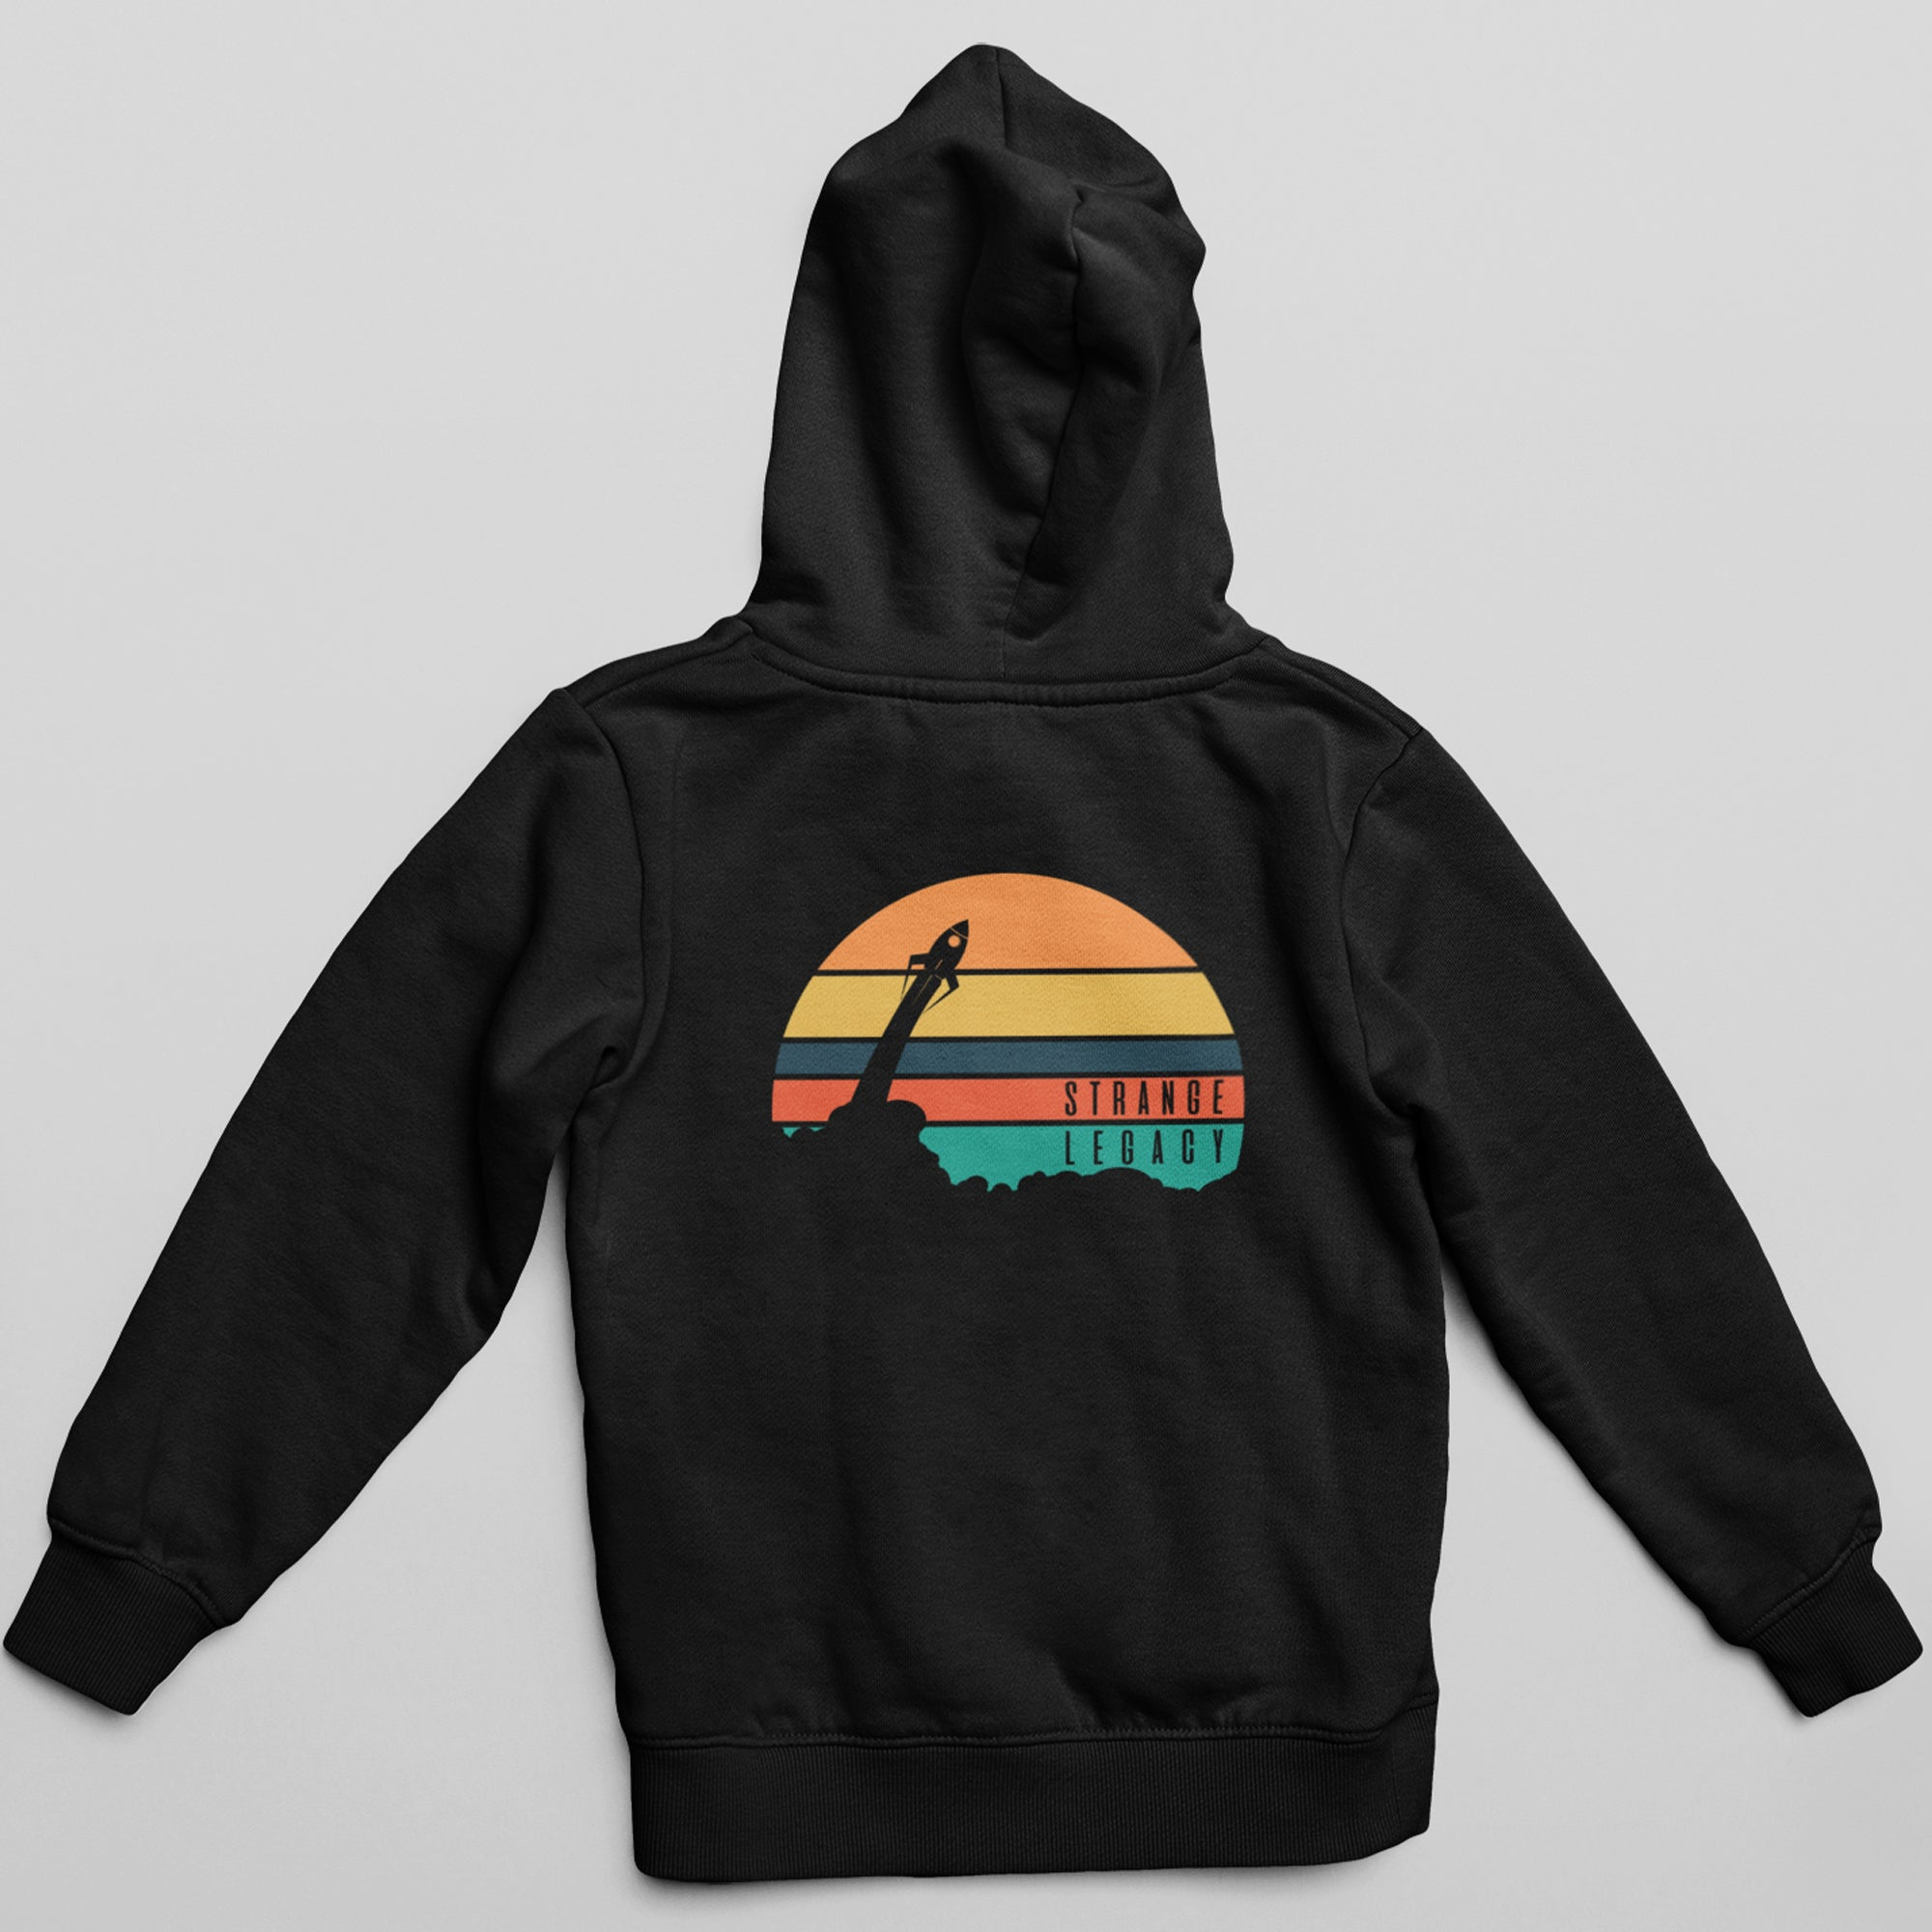 Melted Strange Legacy and Launch Hoodie